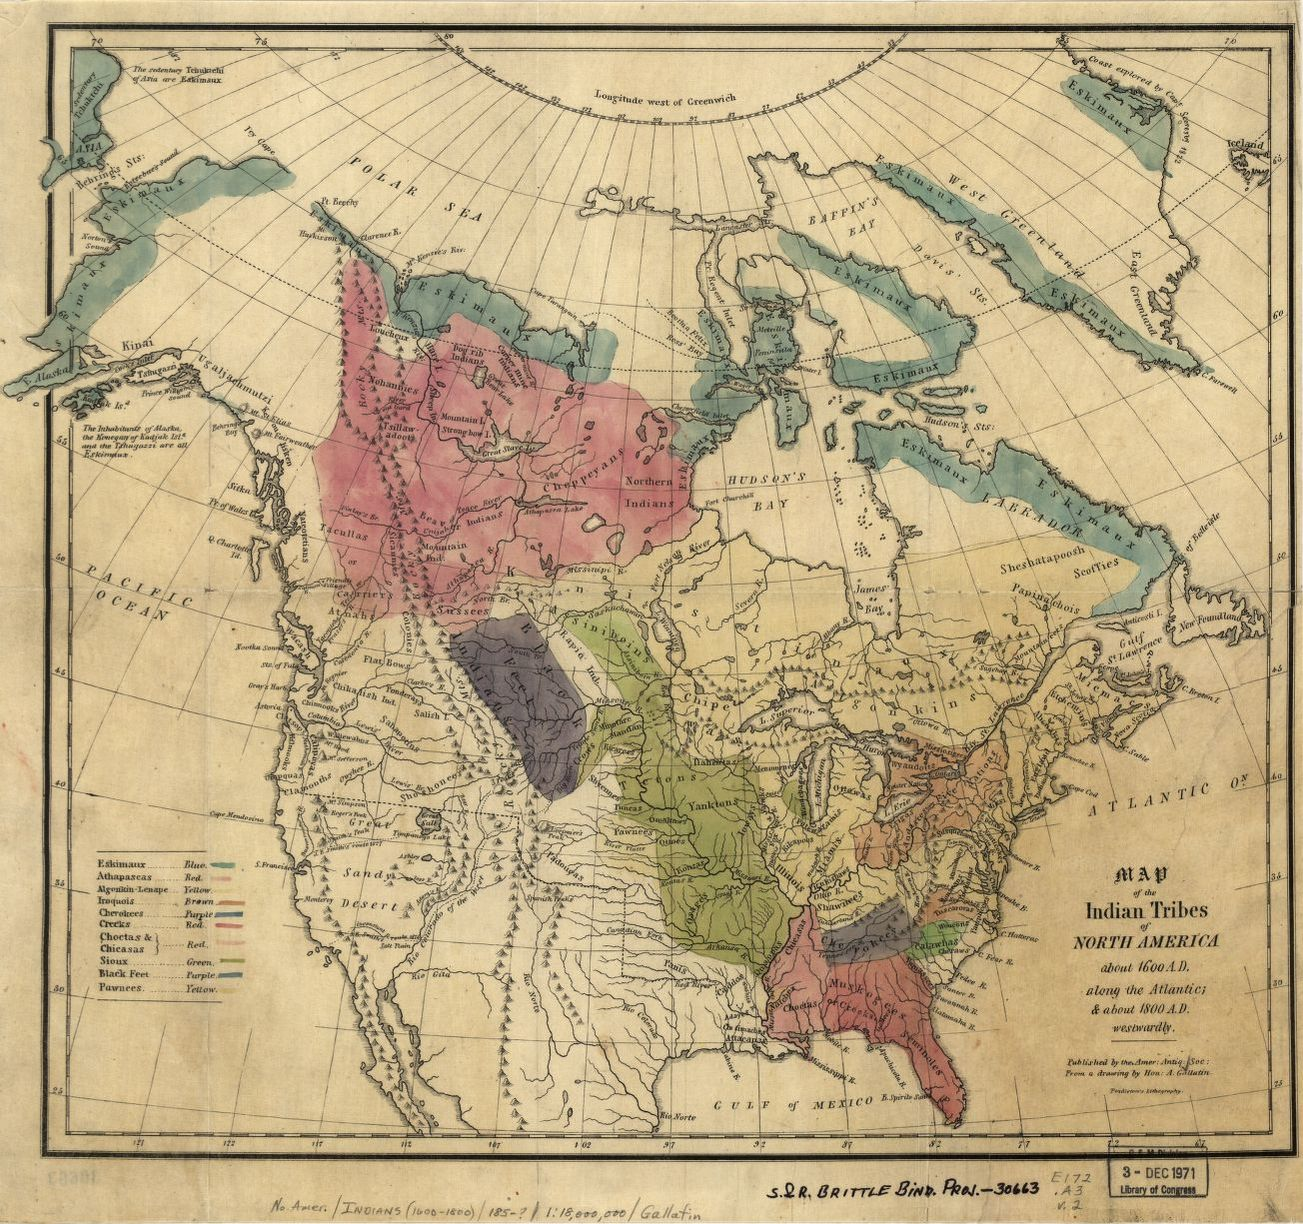 Map Of The Indian Tribes Of North America About A D